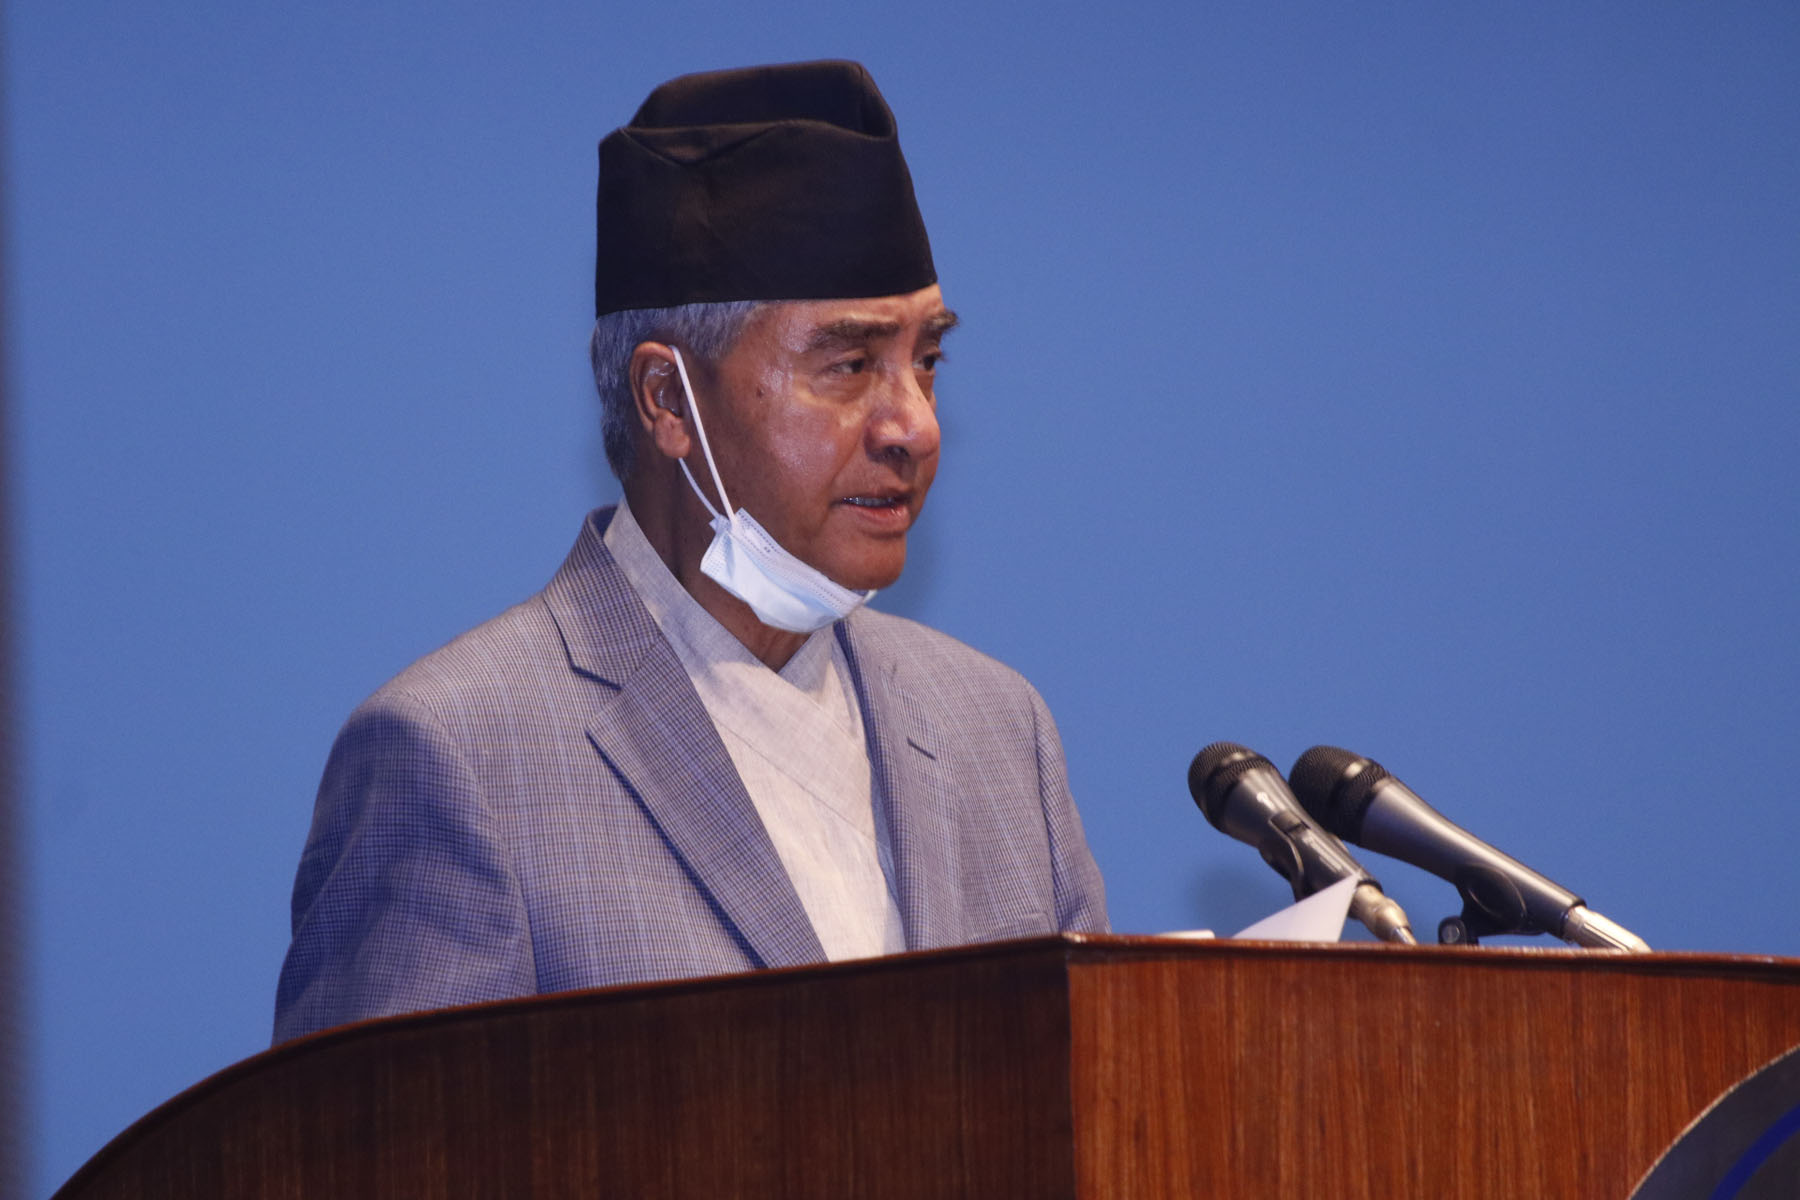 Prime Minister Sher Bahadur Deuba has secured the vote of confidence in parliament Sunday.